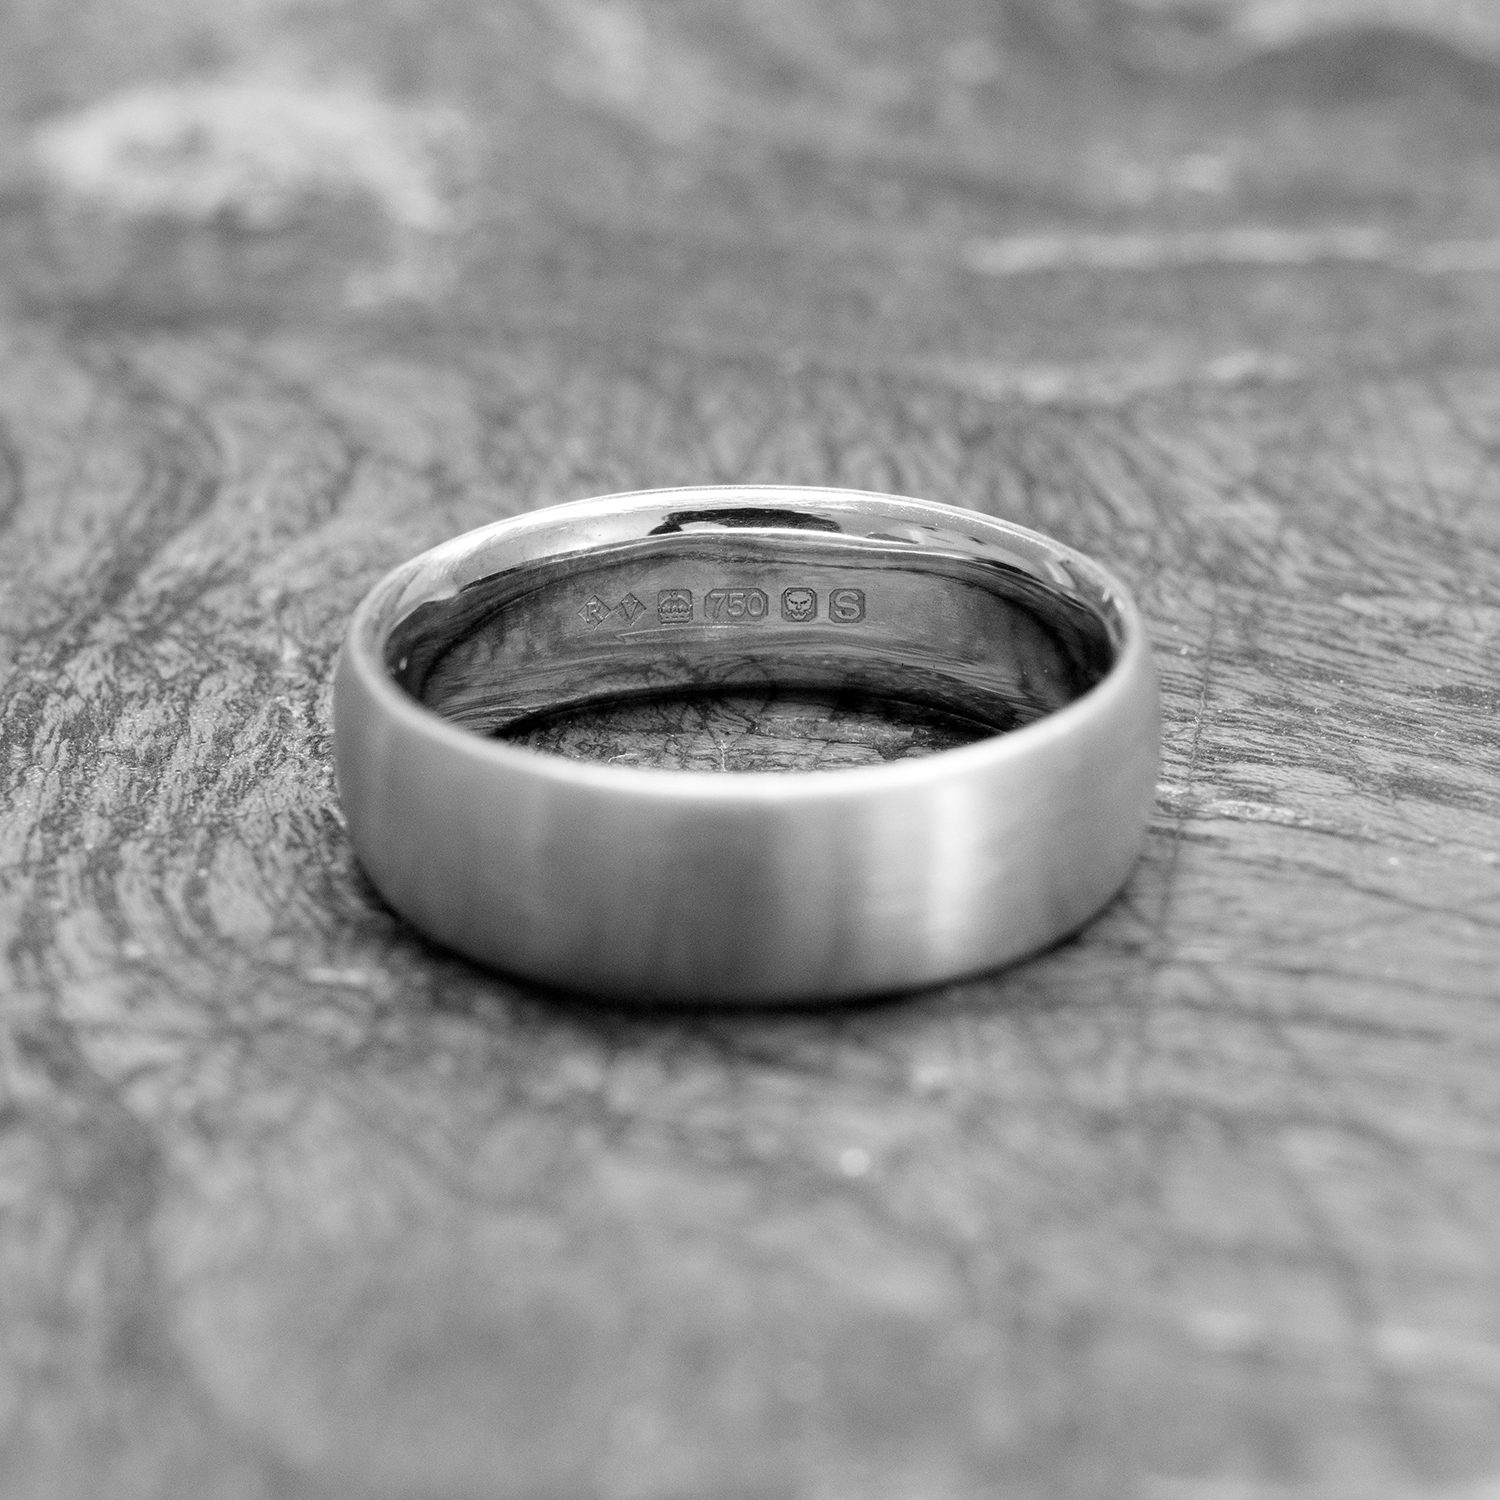 Ring - Charles Barrett 2 black and white 1500px.jpg